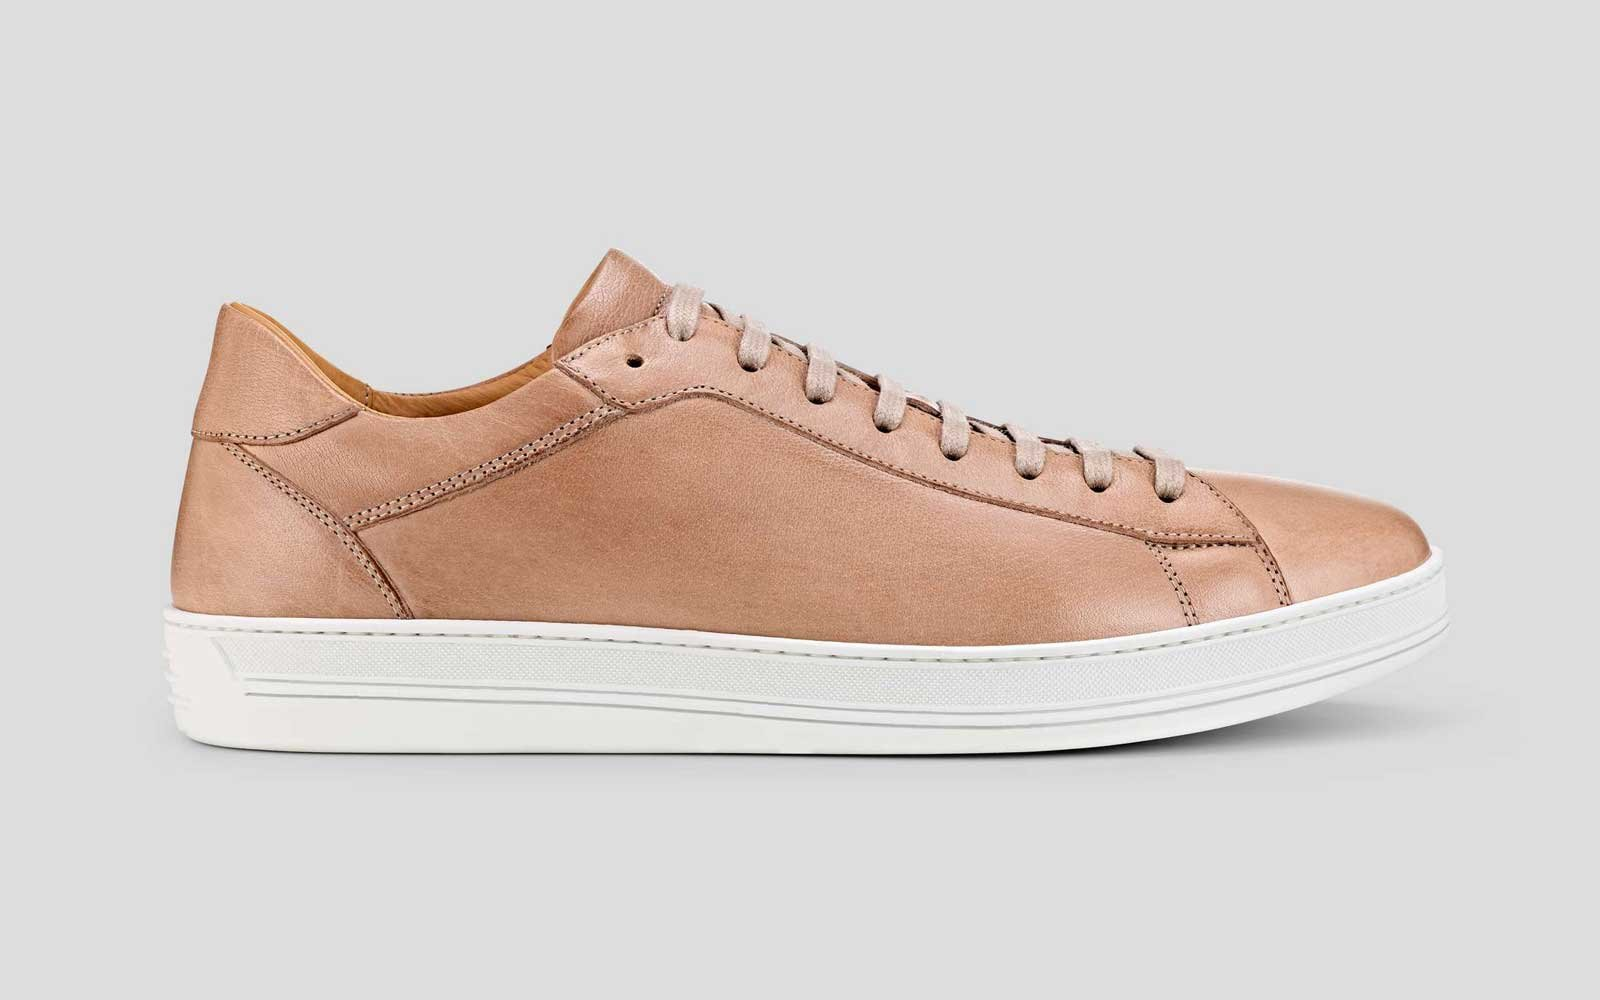 m gemi men's sneakers